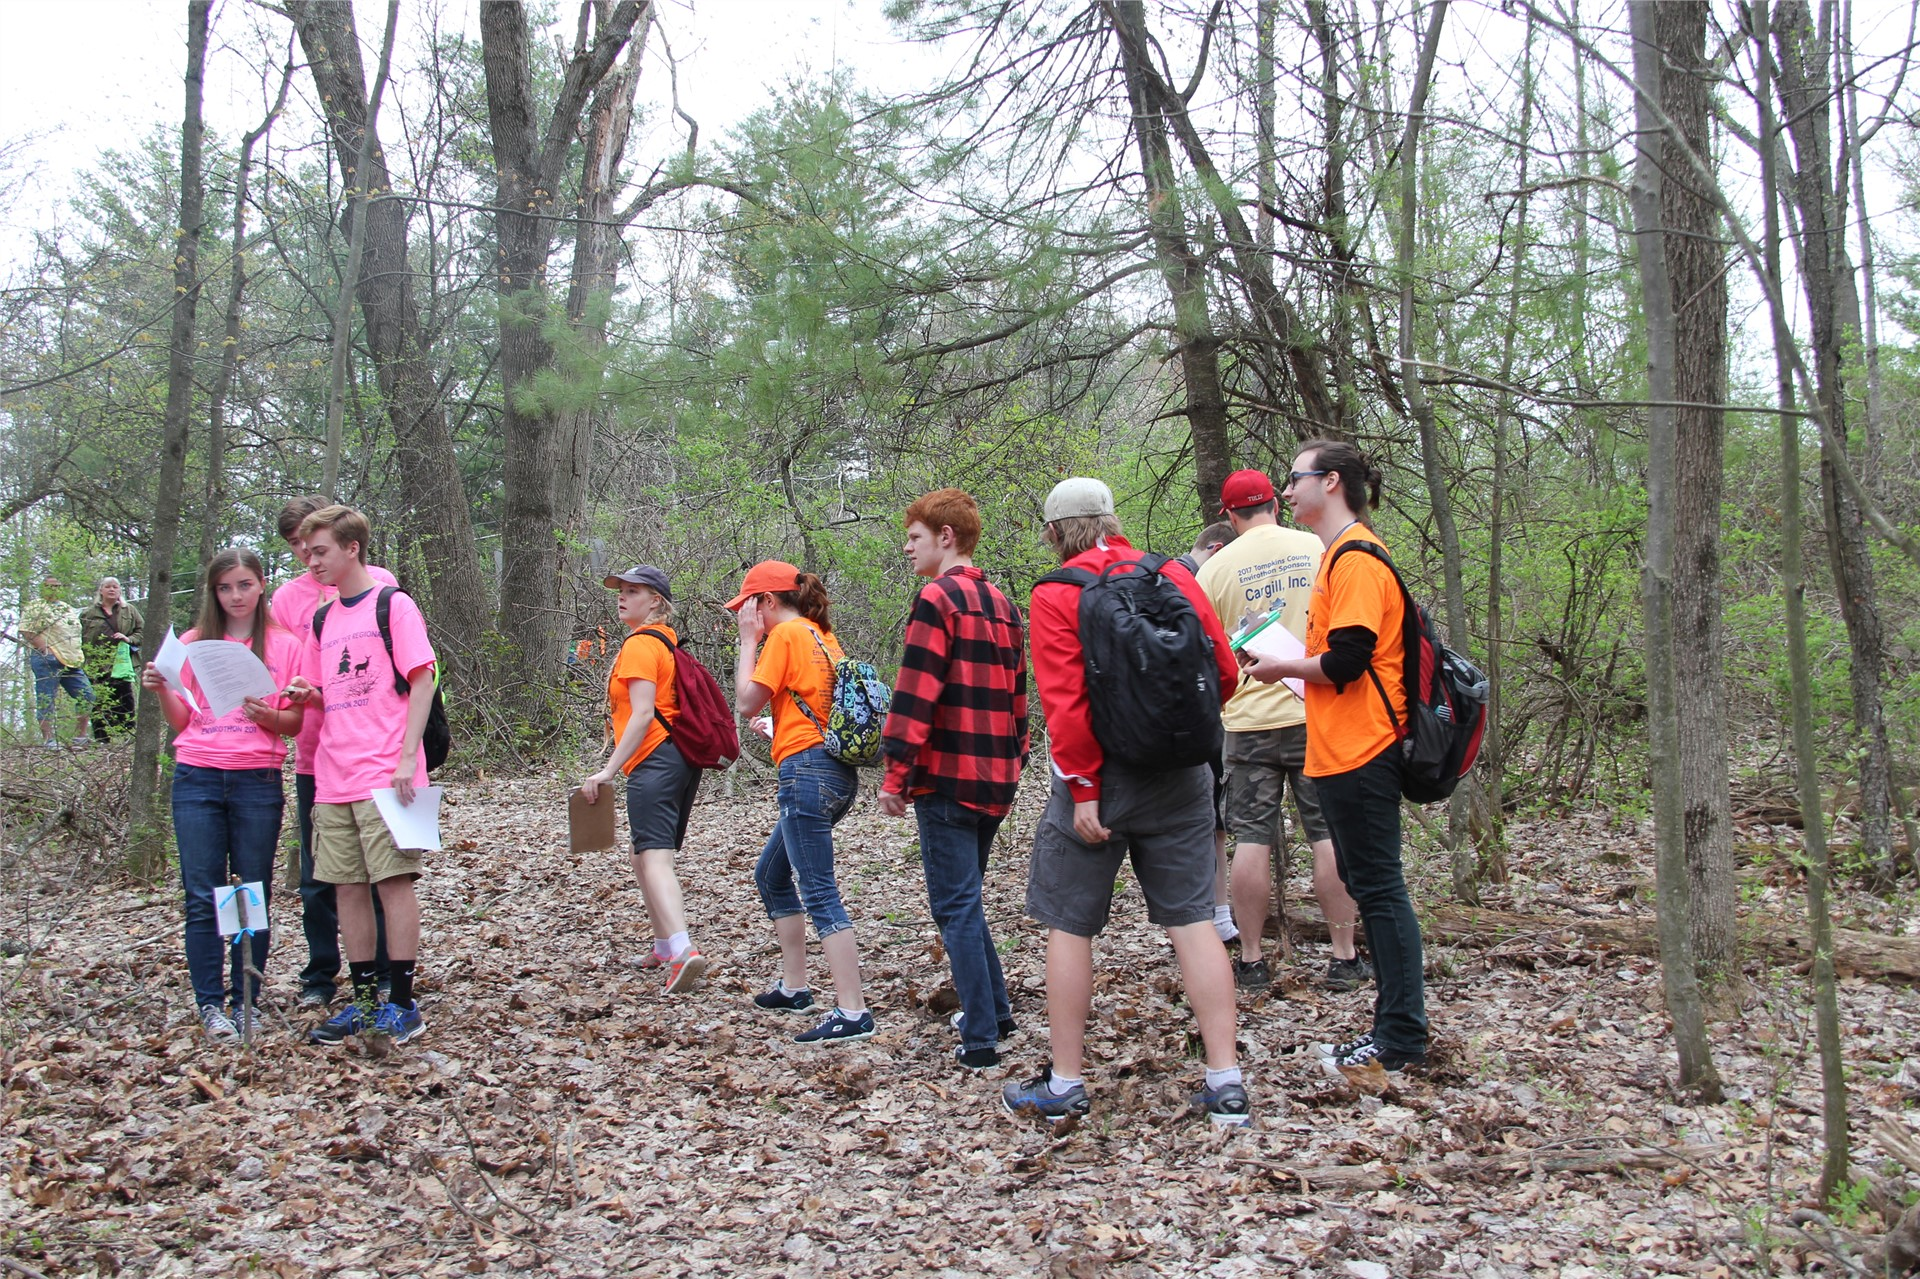 group of students walking in wooded area